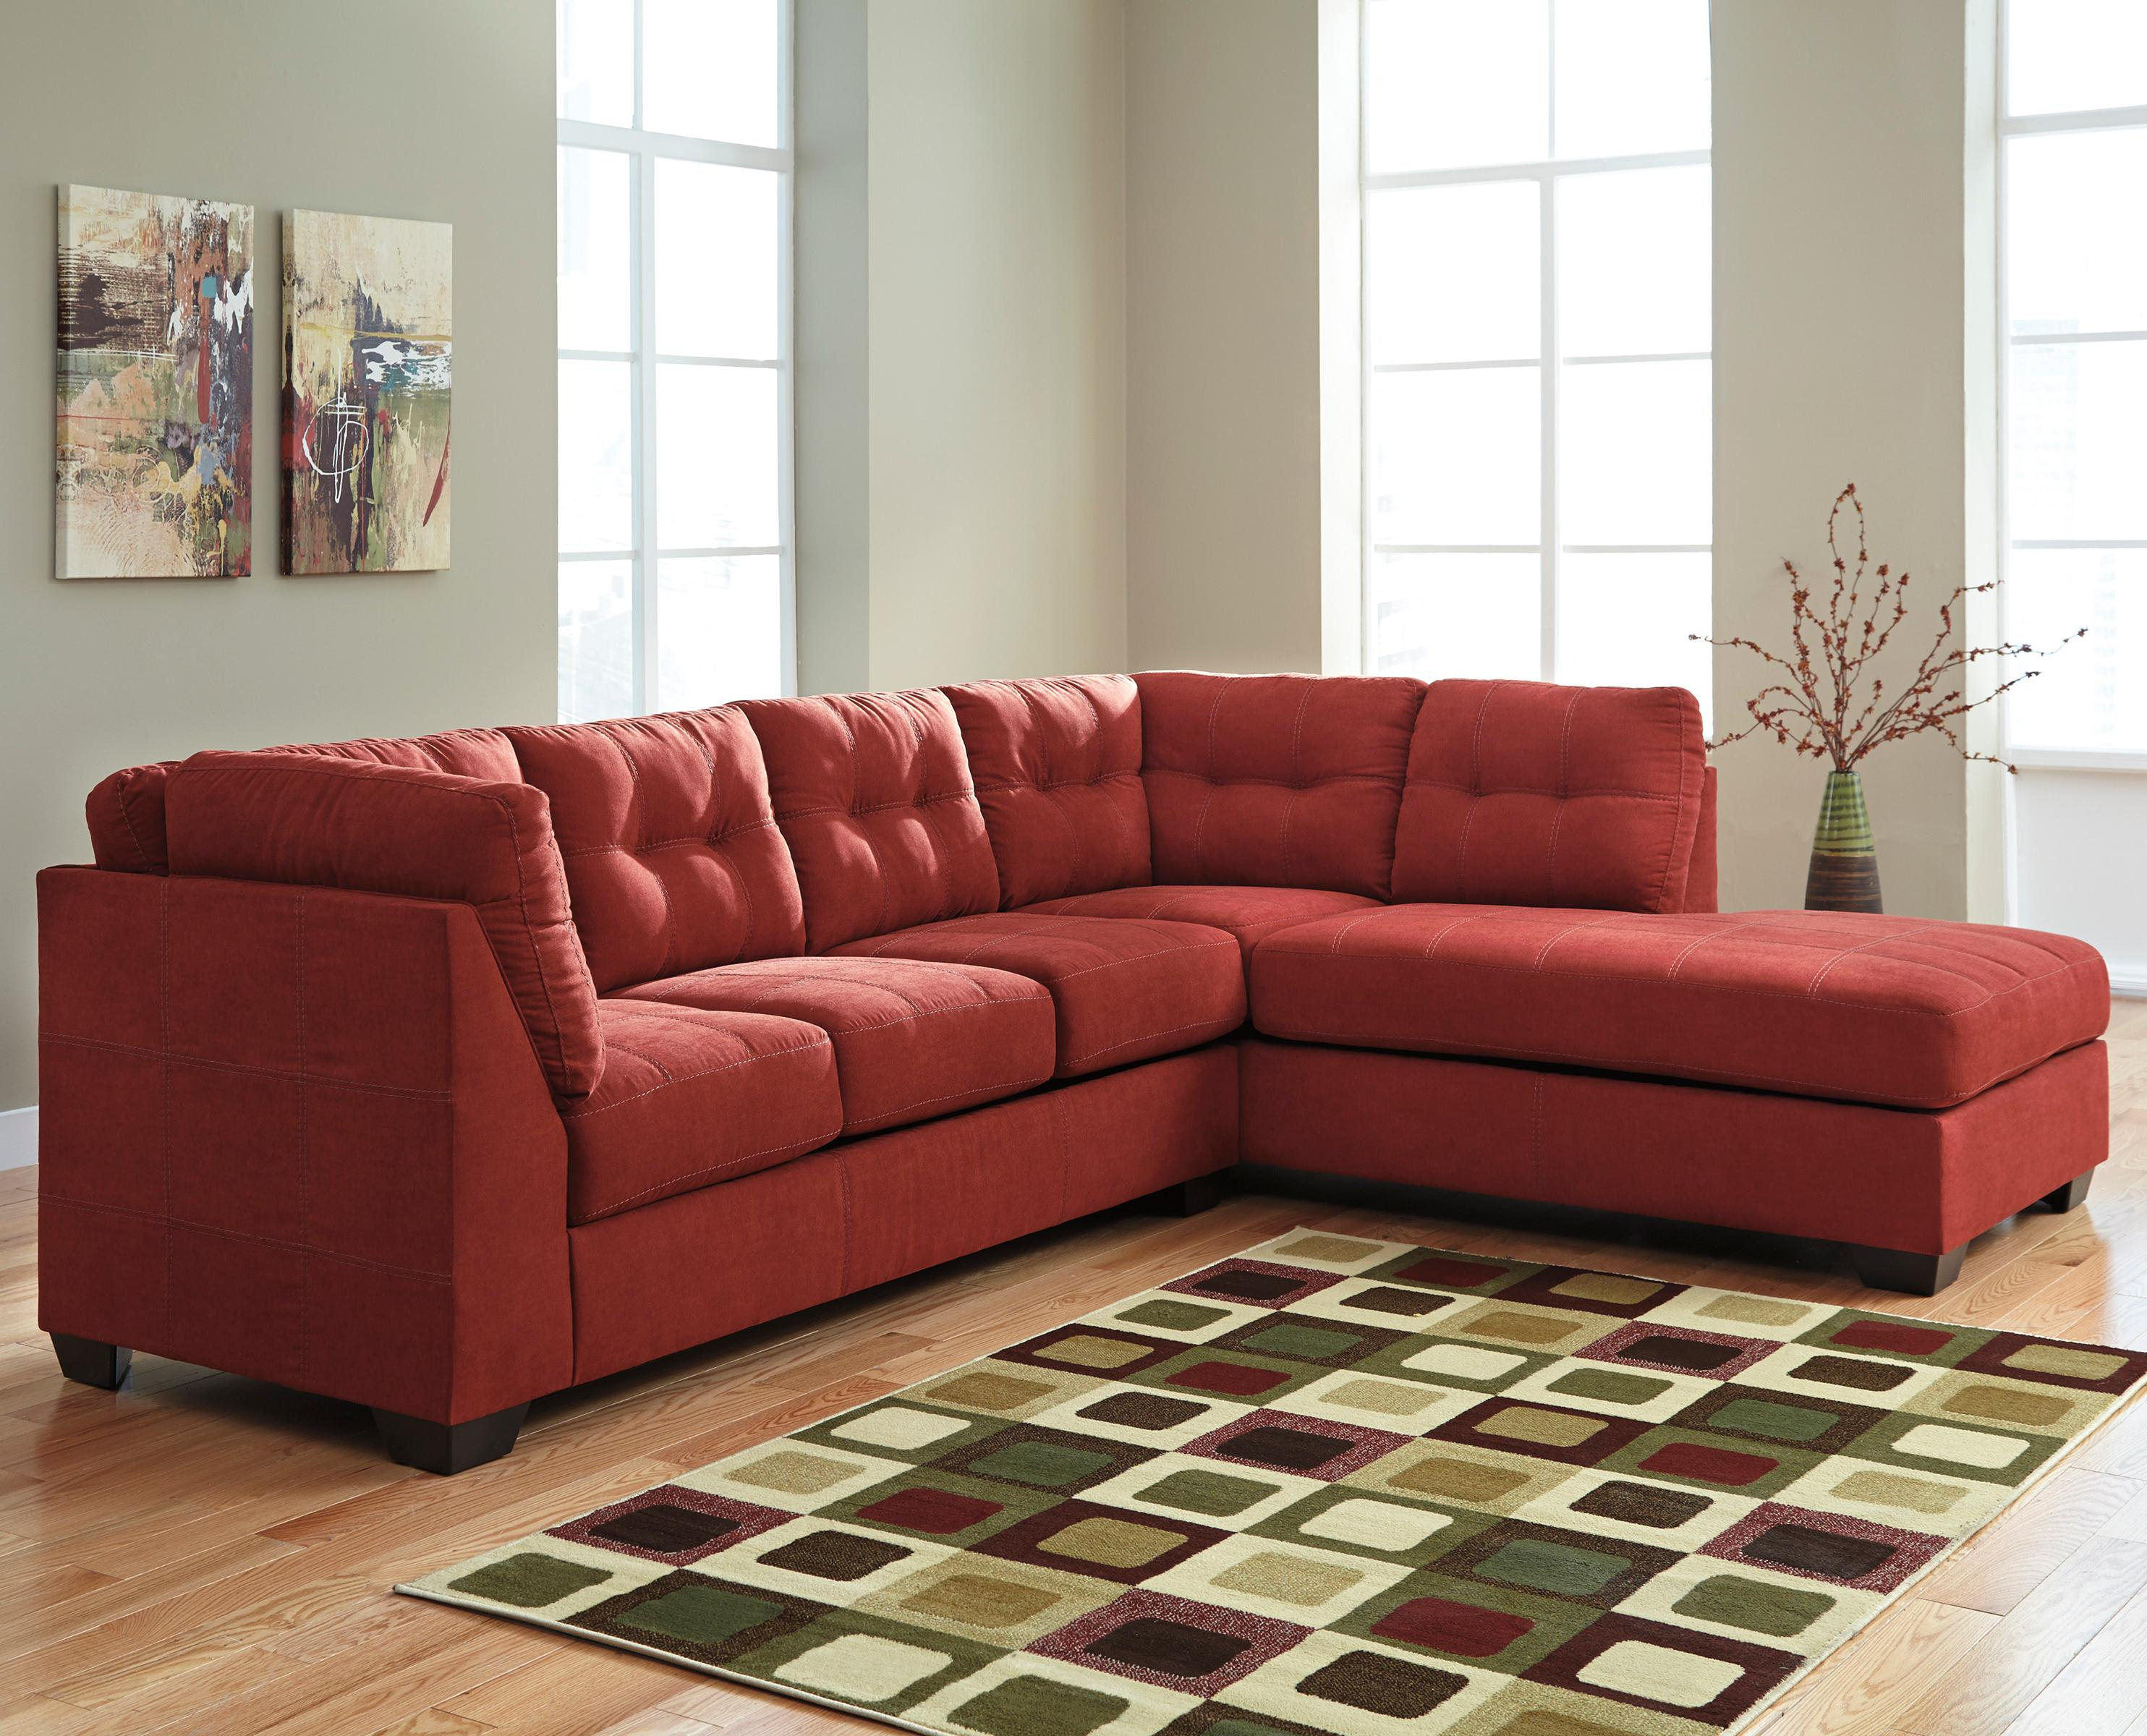 2-Piece Sectional w/ Sleeper Sofa & Right Chaise by Benchcraft ...